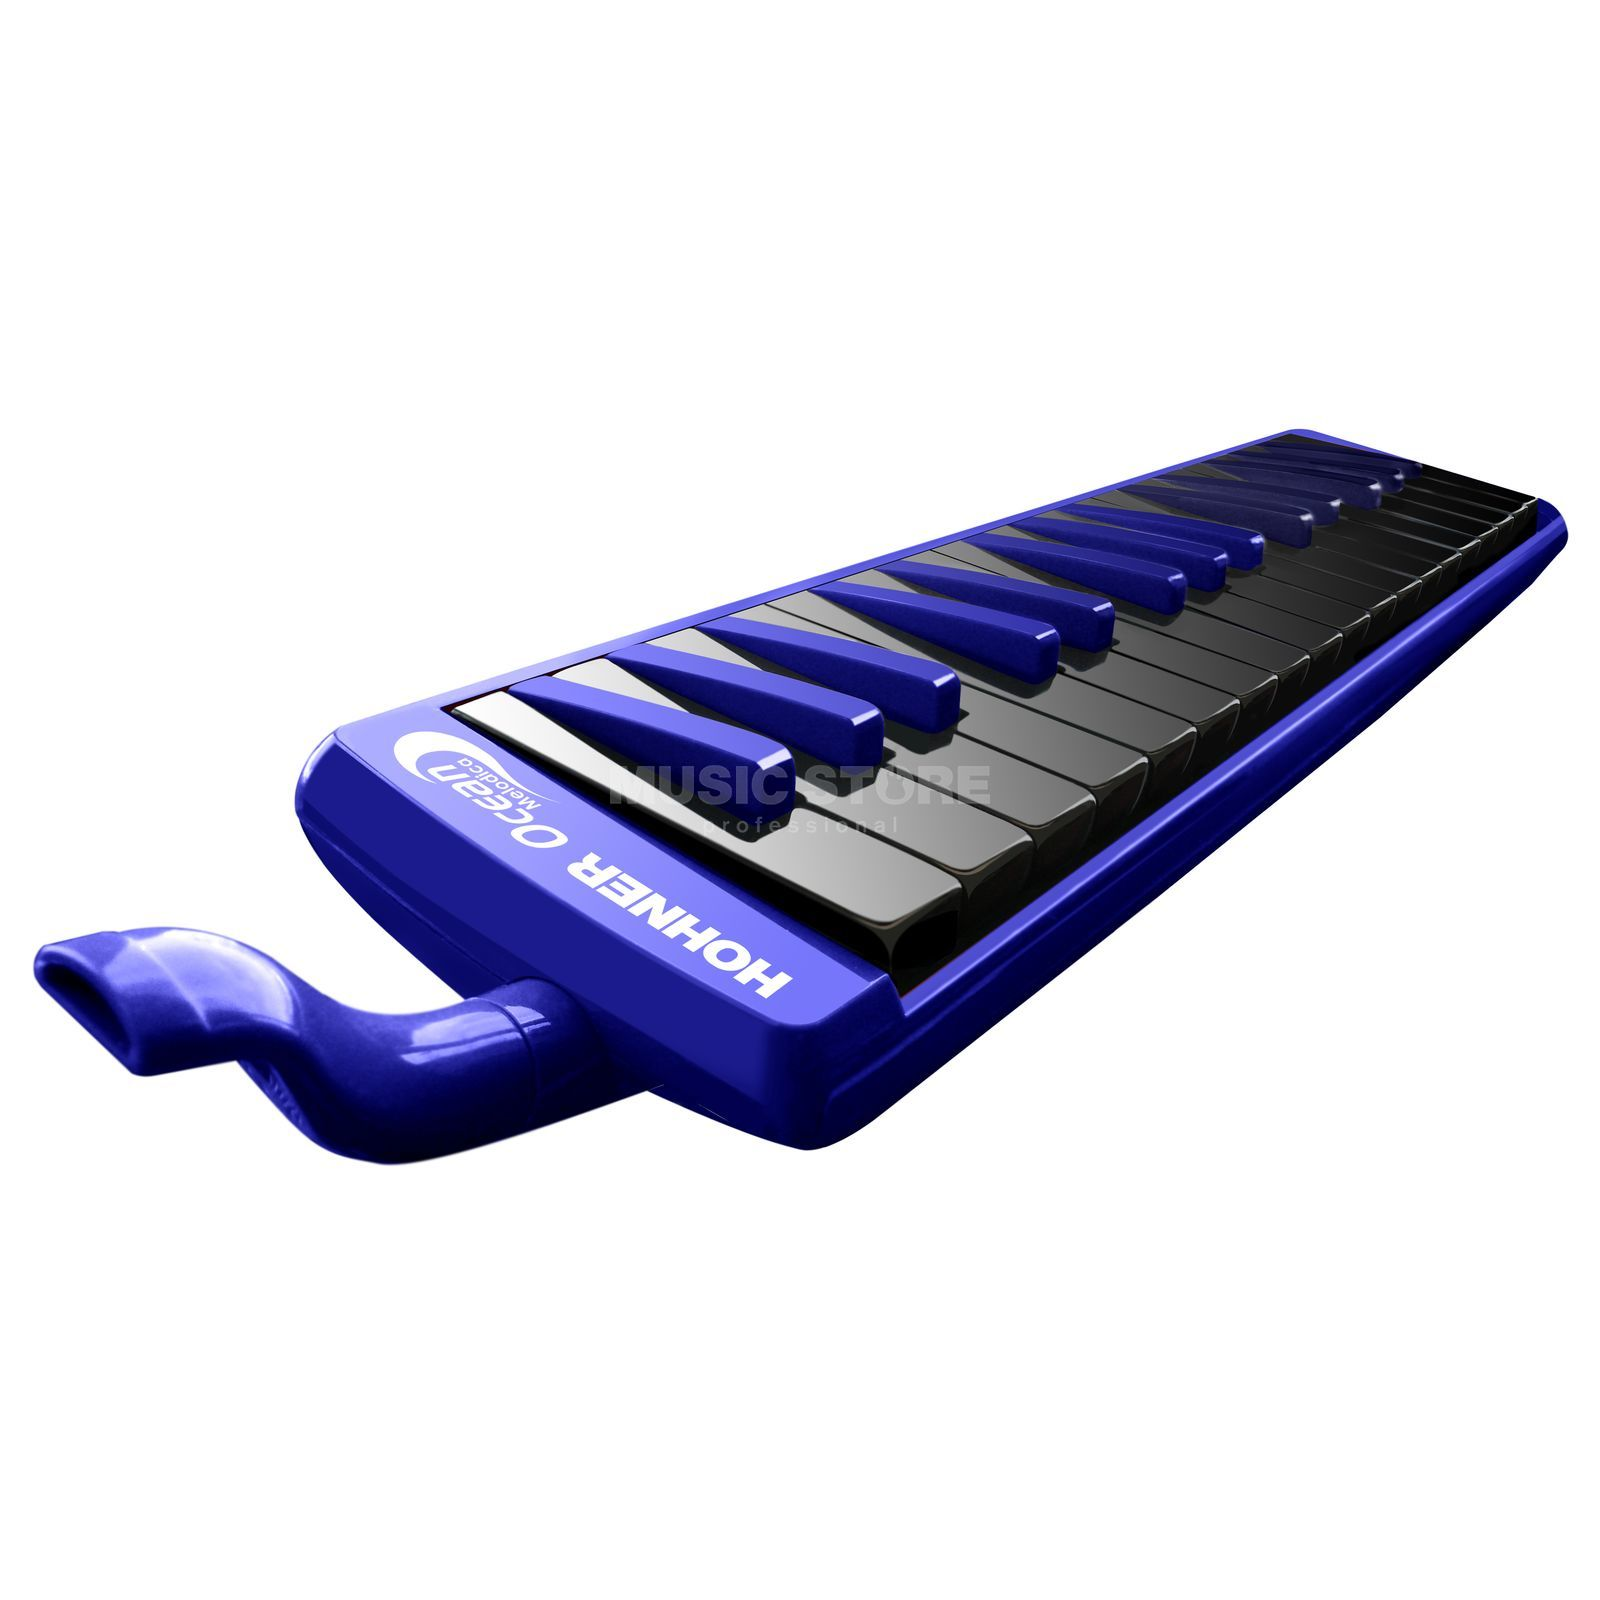 "Hohner Melodica 32 ""Ocean"" incl. Bag and Accessories Product Image"